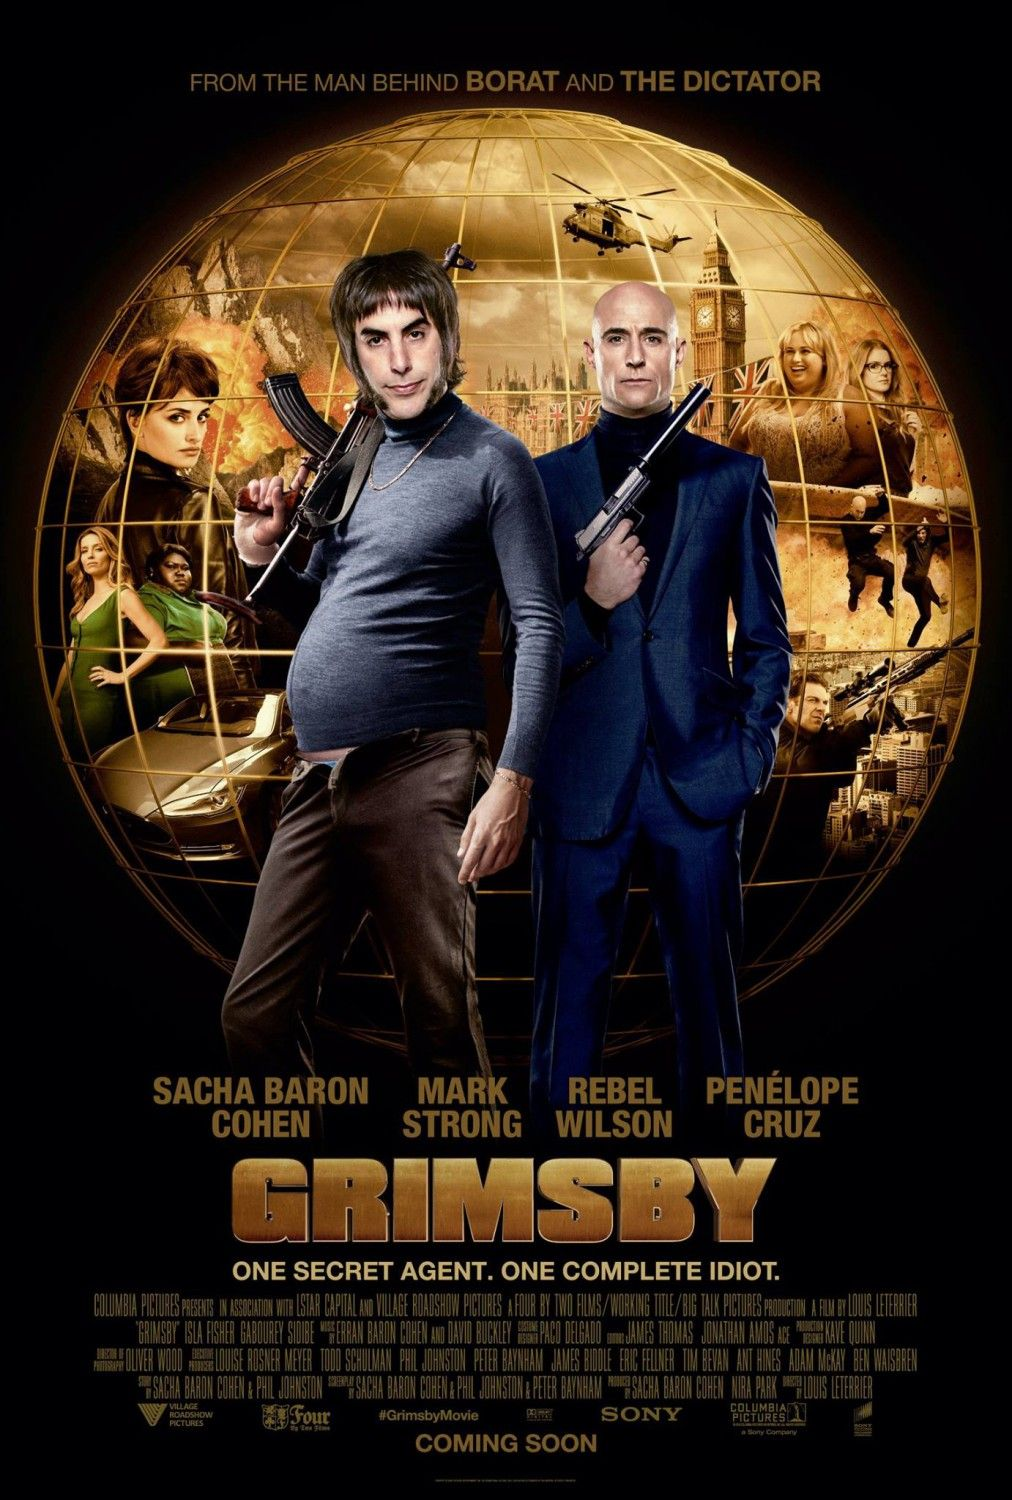 The Brothers Grimsby Movie Poster Movie Posters Streaming Movies New Movies Internet Movies